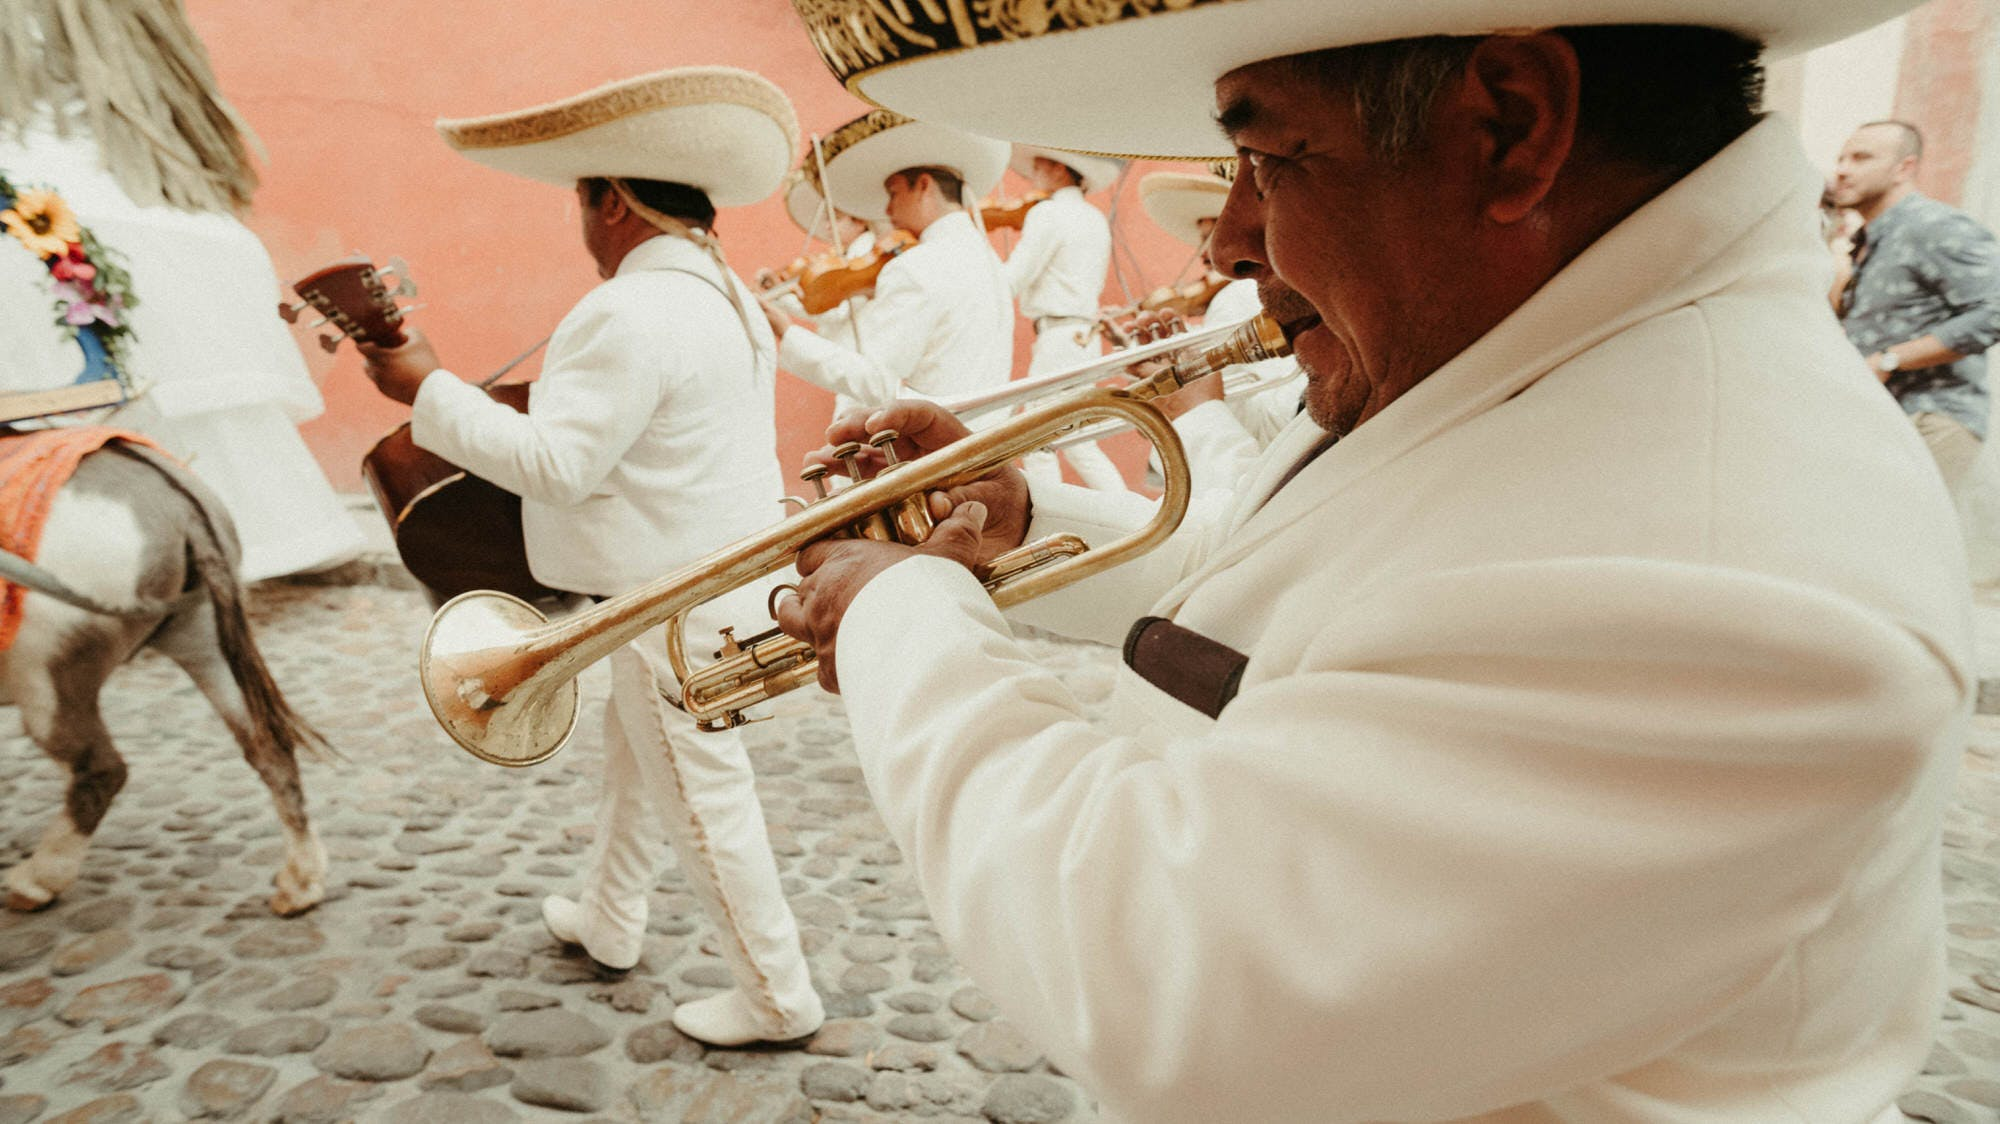 mexican parade with trumpets and donkey